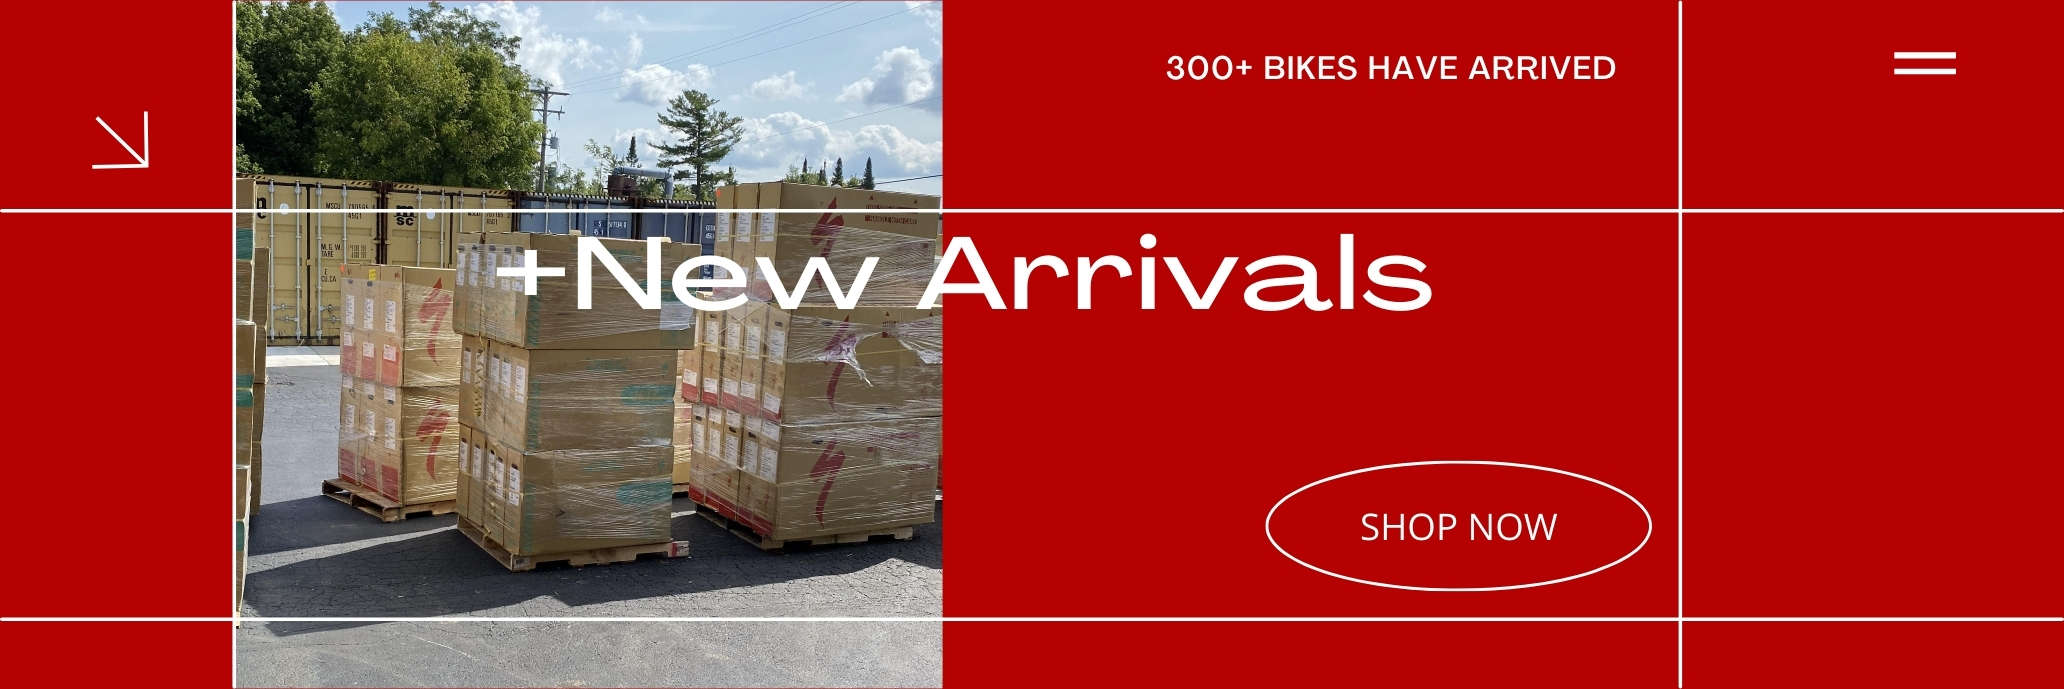 More than 300 bikes are now in stock